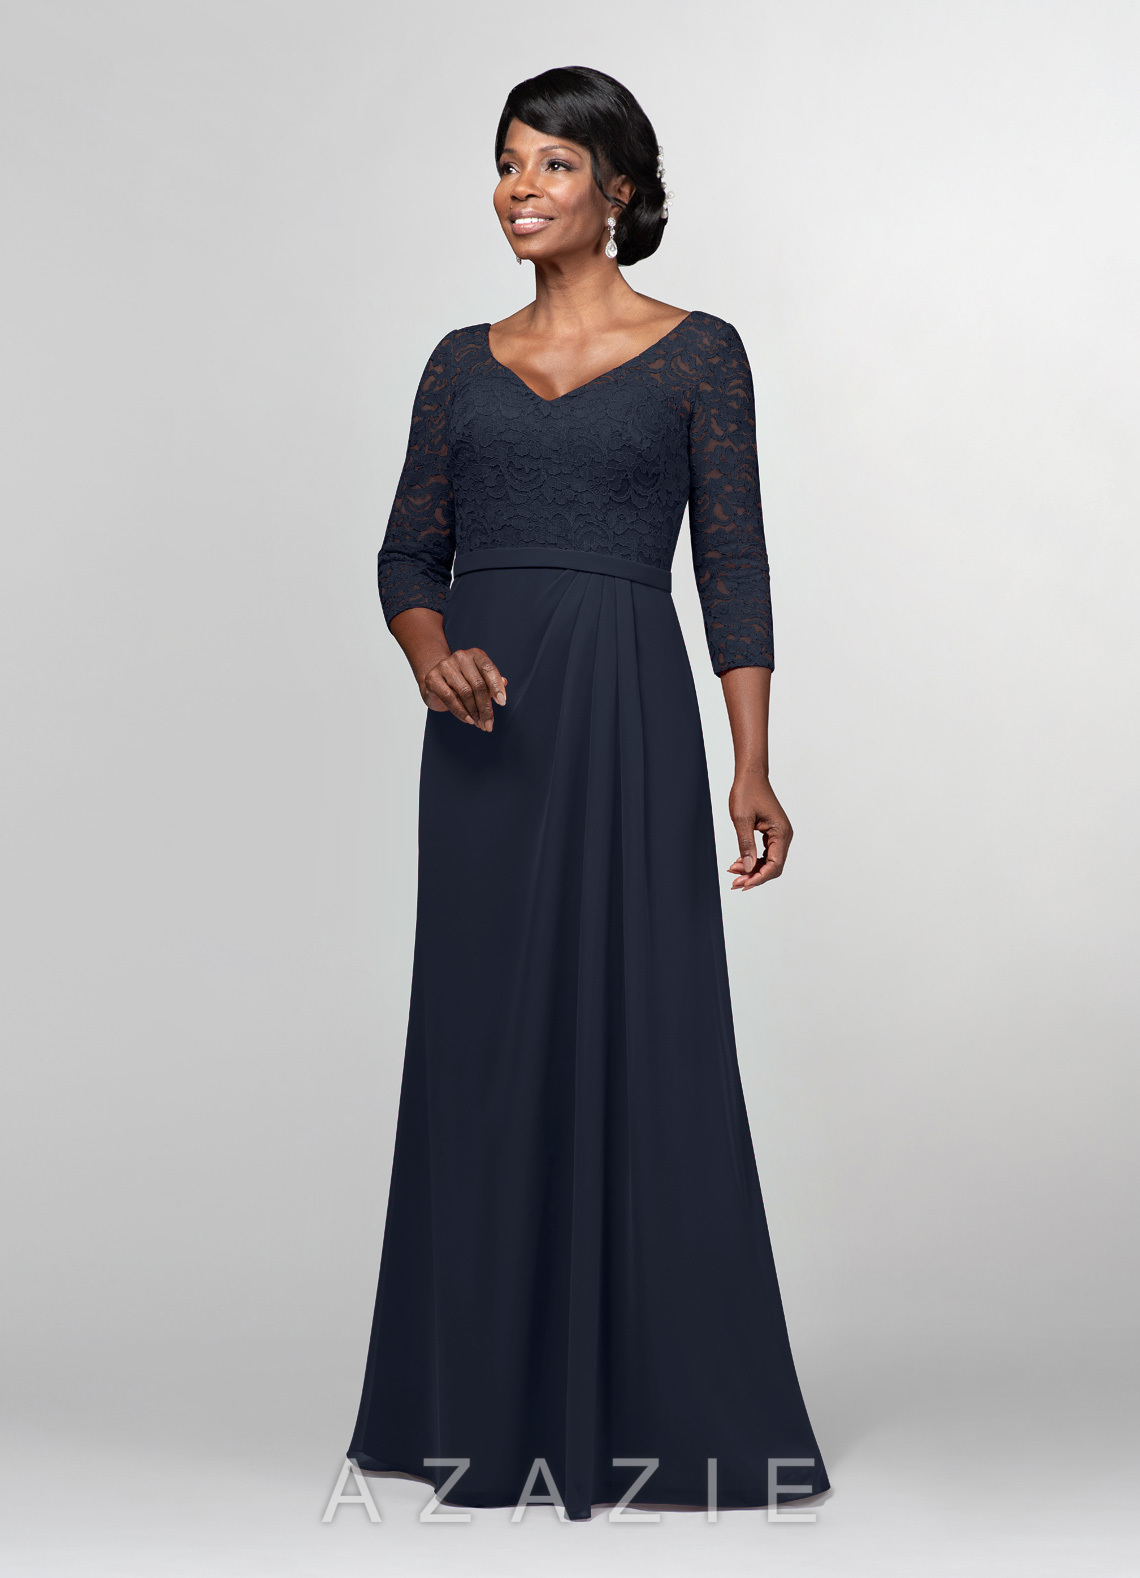 48c9de09f7 Azazie Bette MBD Mother Of The Bride Dress | Azazie